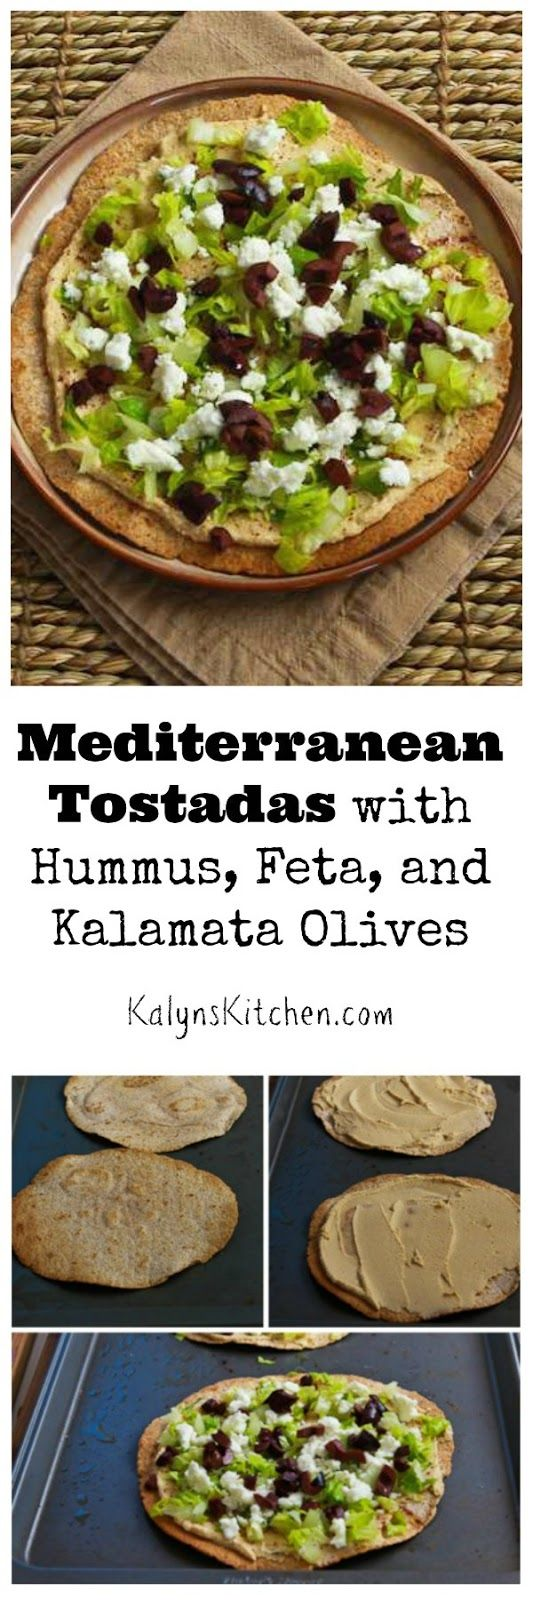 These Mediterranean Tostadas with Hummus, Feta, and Kalamata Olives are an easy and delicious lunch!  (Meatless Monday)  [found on KalynsKitchen.com]